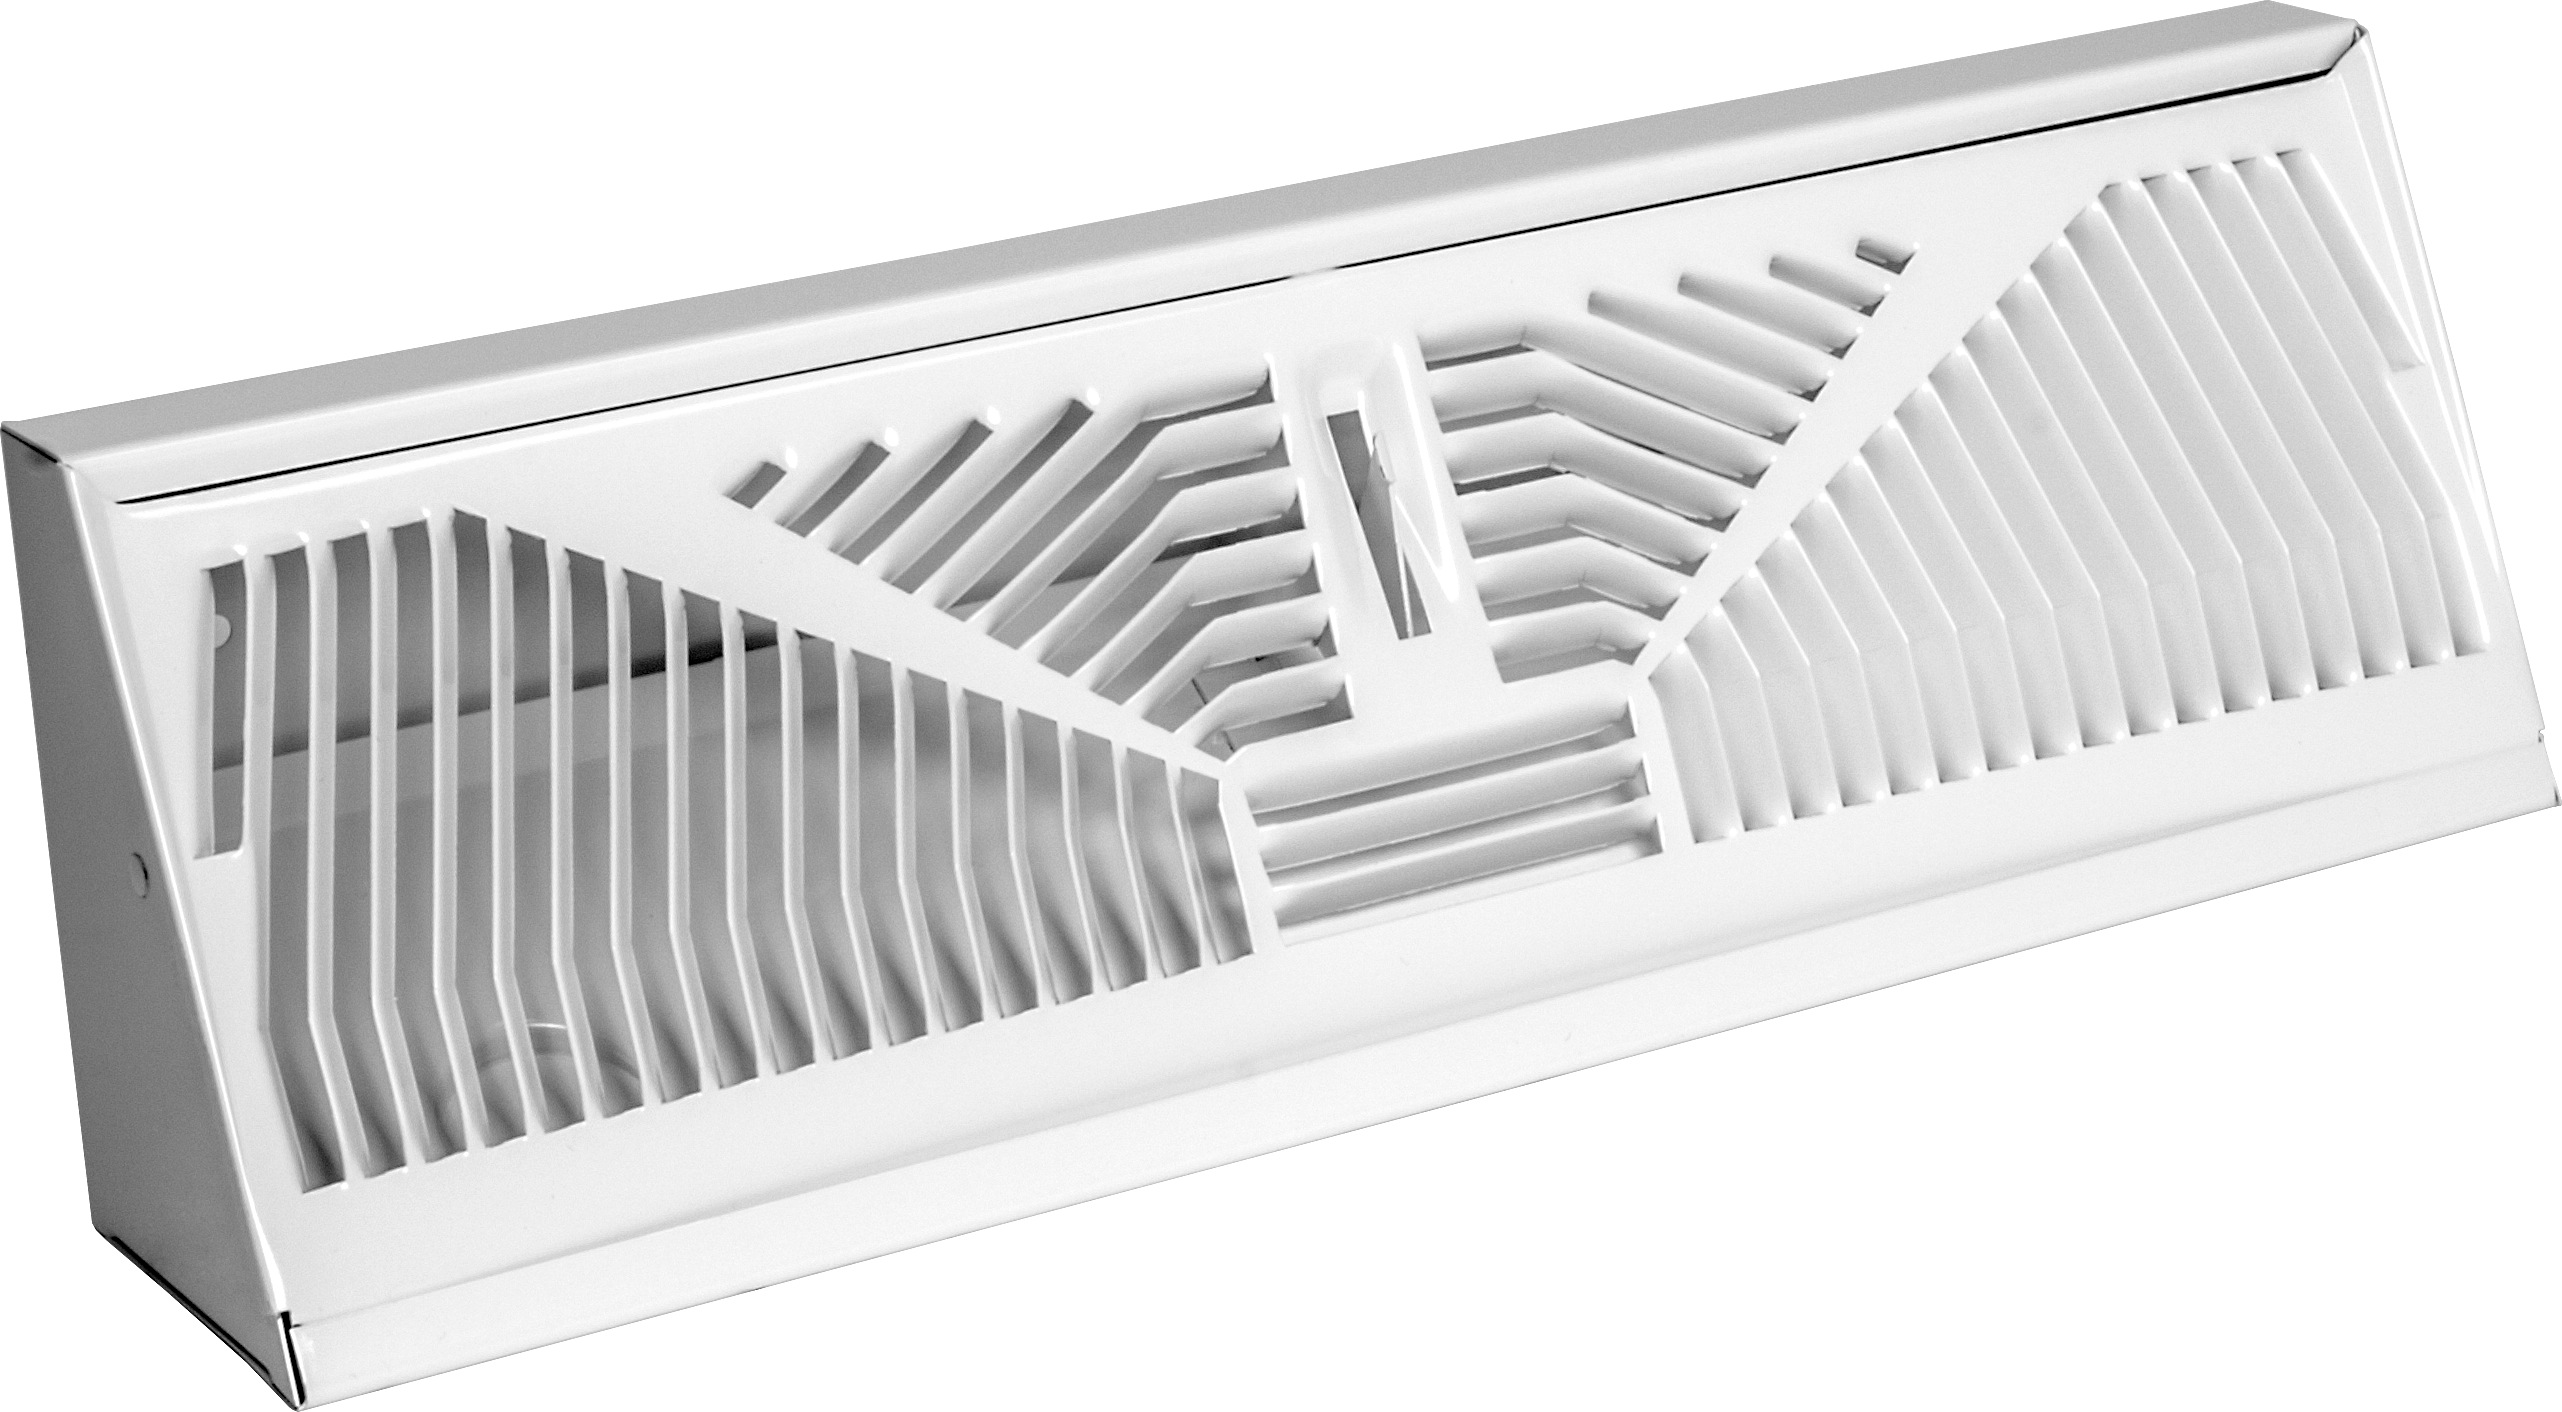 #3A3A3A 350 Baseboard Diffuser AirMate Recommended 3407 Heat Register Covers Wall pics with 2562x1412 px on helpvideos.info - Air Conditioners, Air Coolers and more